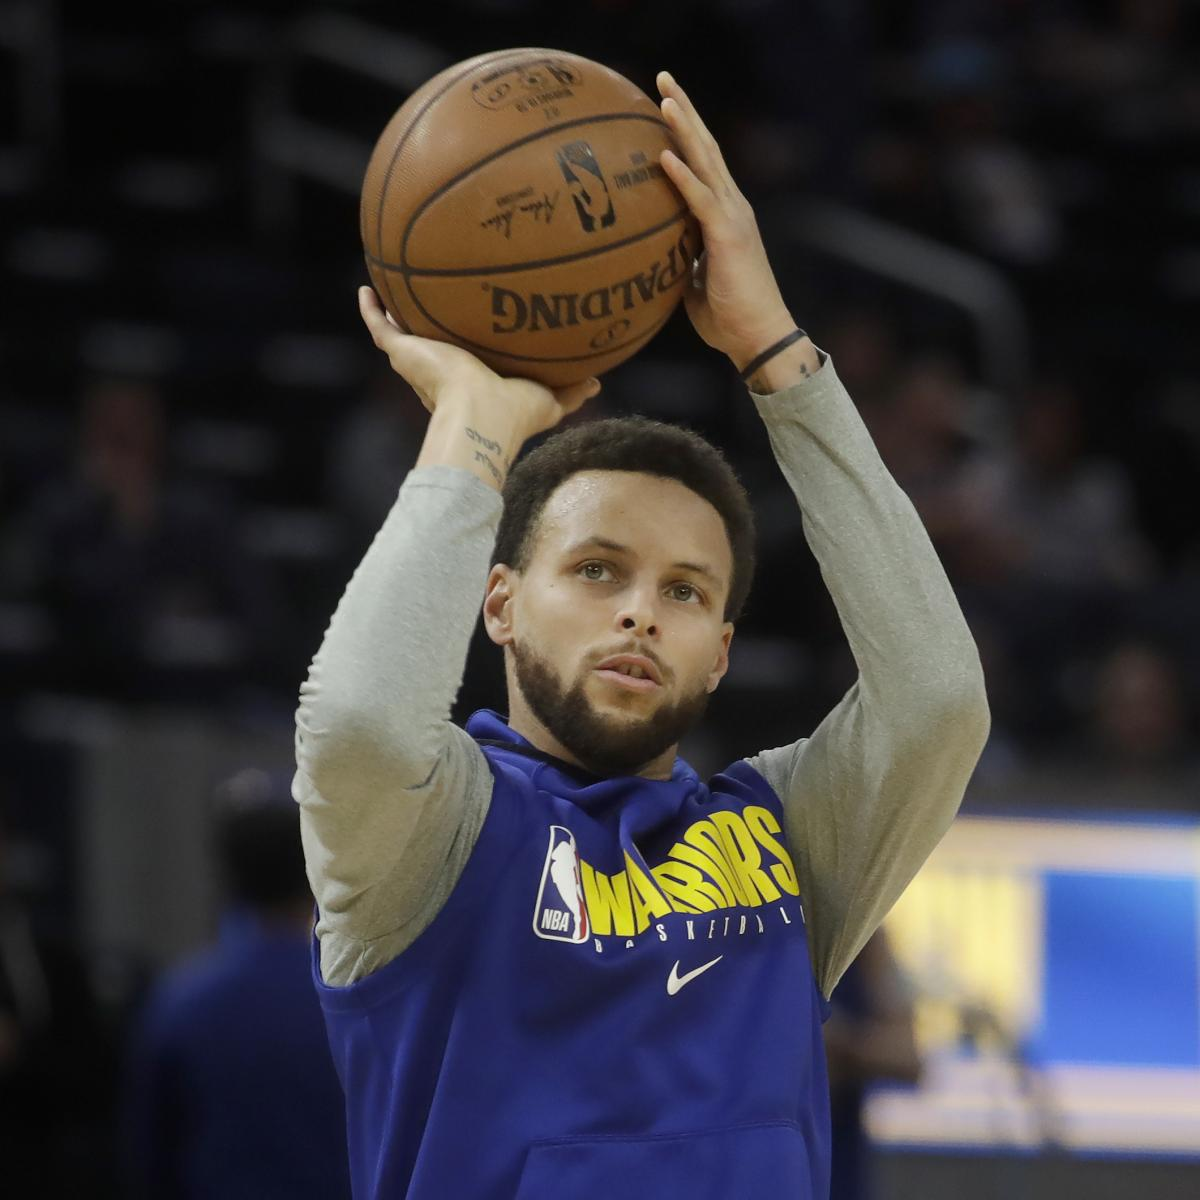 Stephen Curry Return from Hand Injury Uncertain; Warriors to Update in 2 Weeks